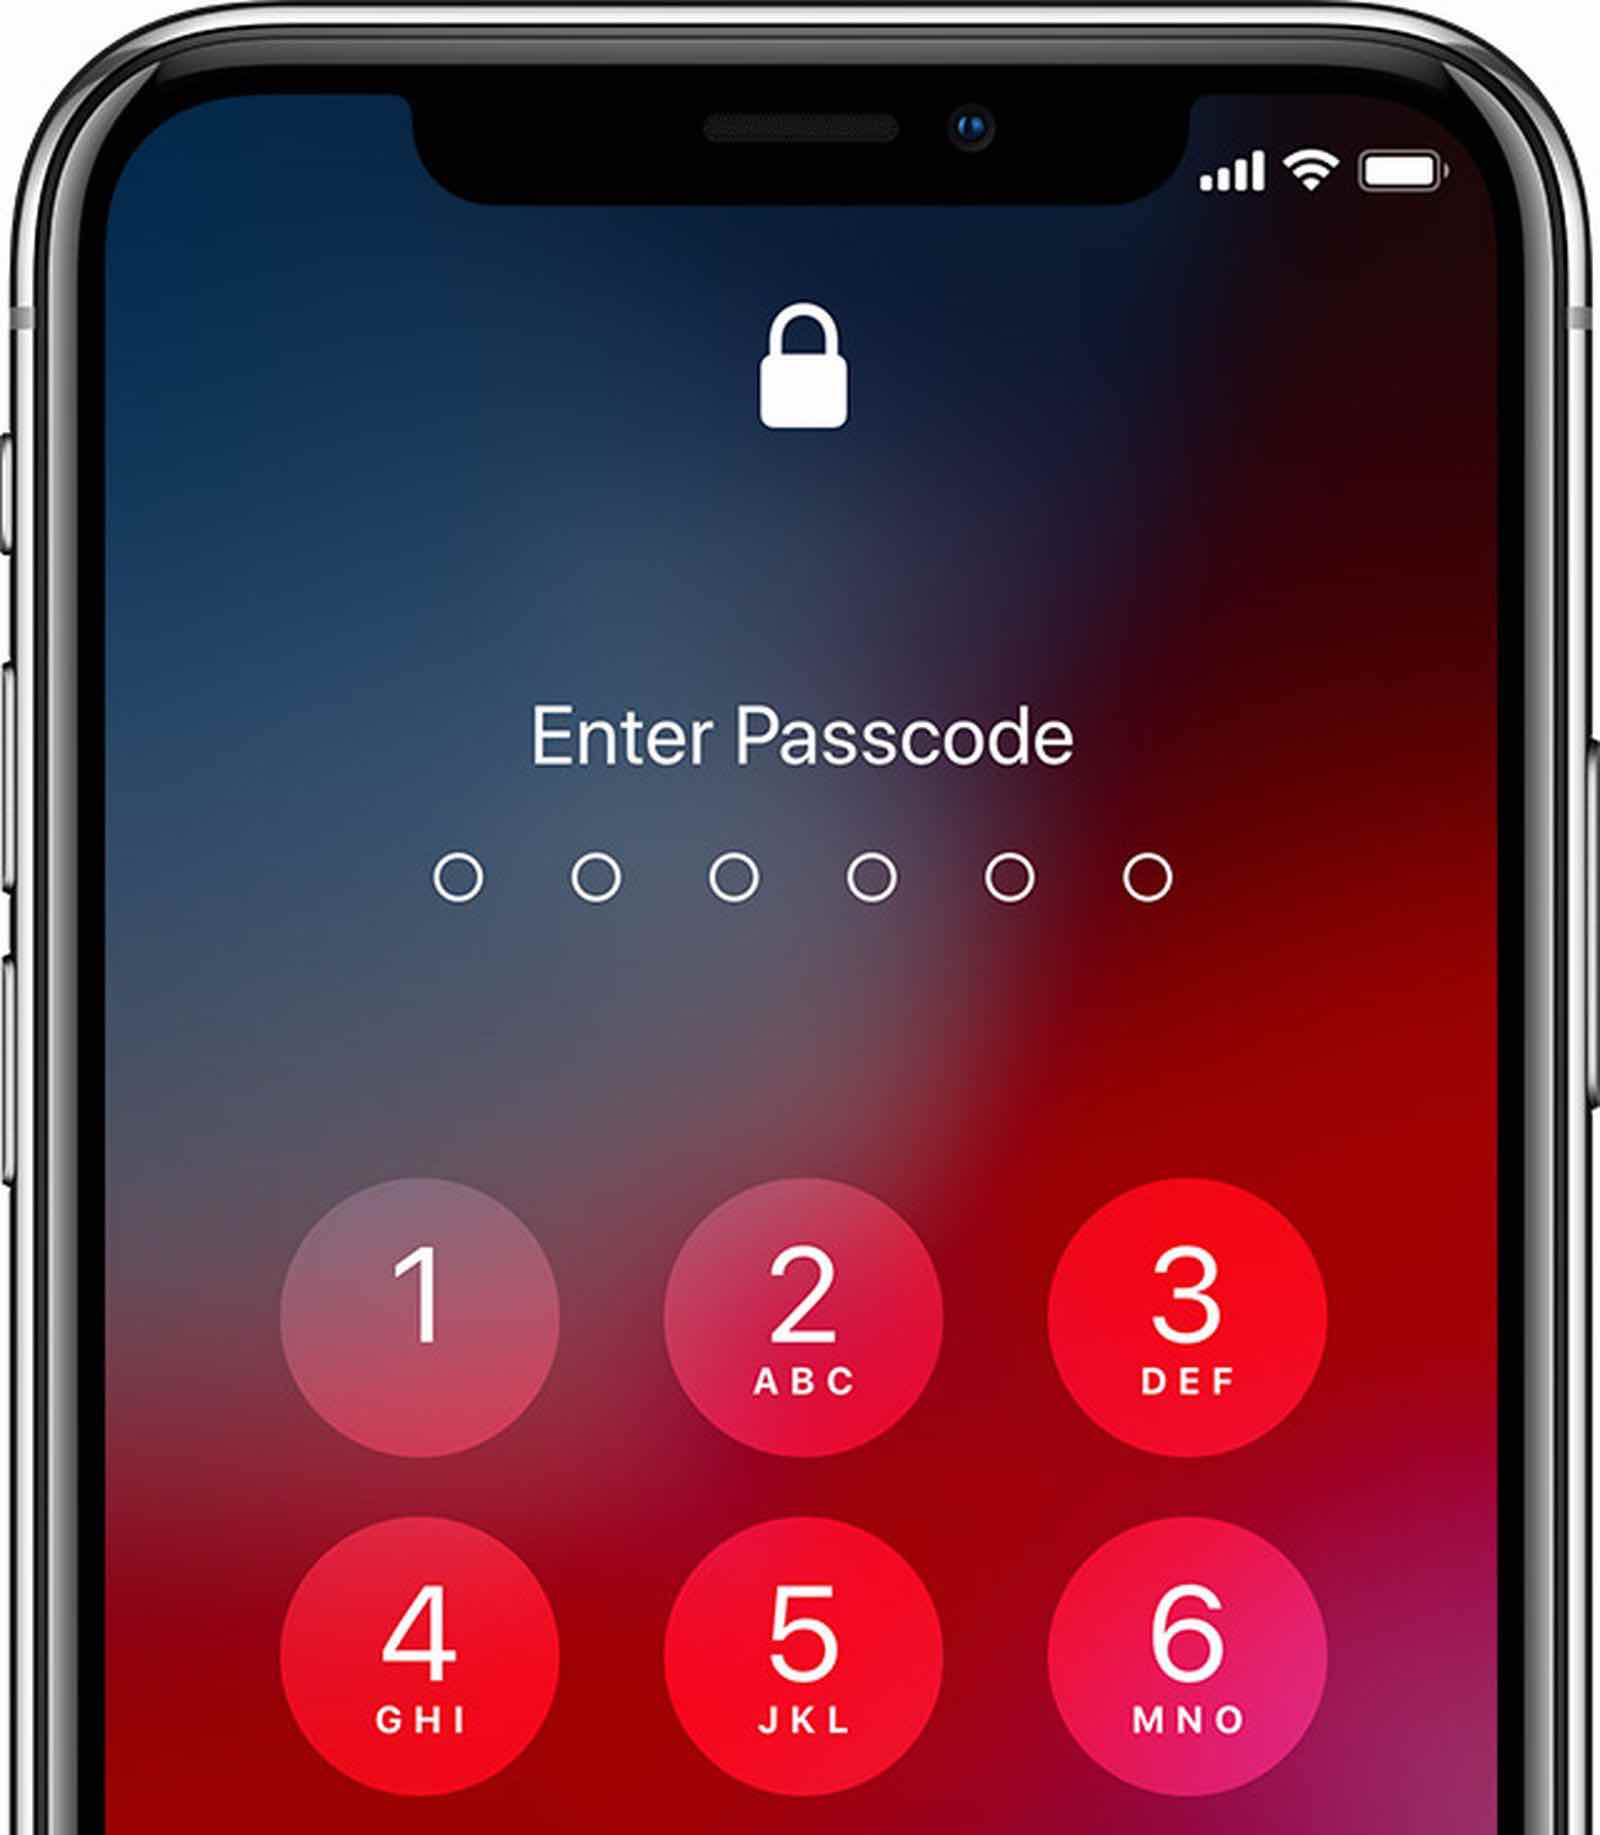 Passcode bypass iOS13.3.1 achieved on devices supported by checkra1n All About iCloud and iOS ...